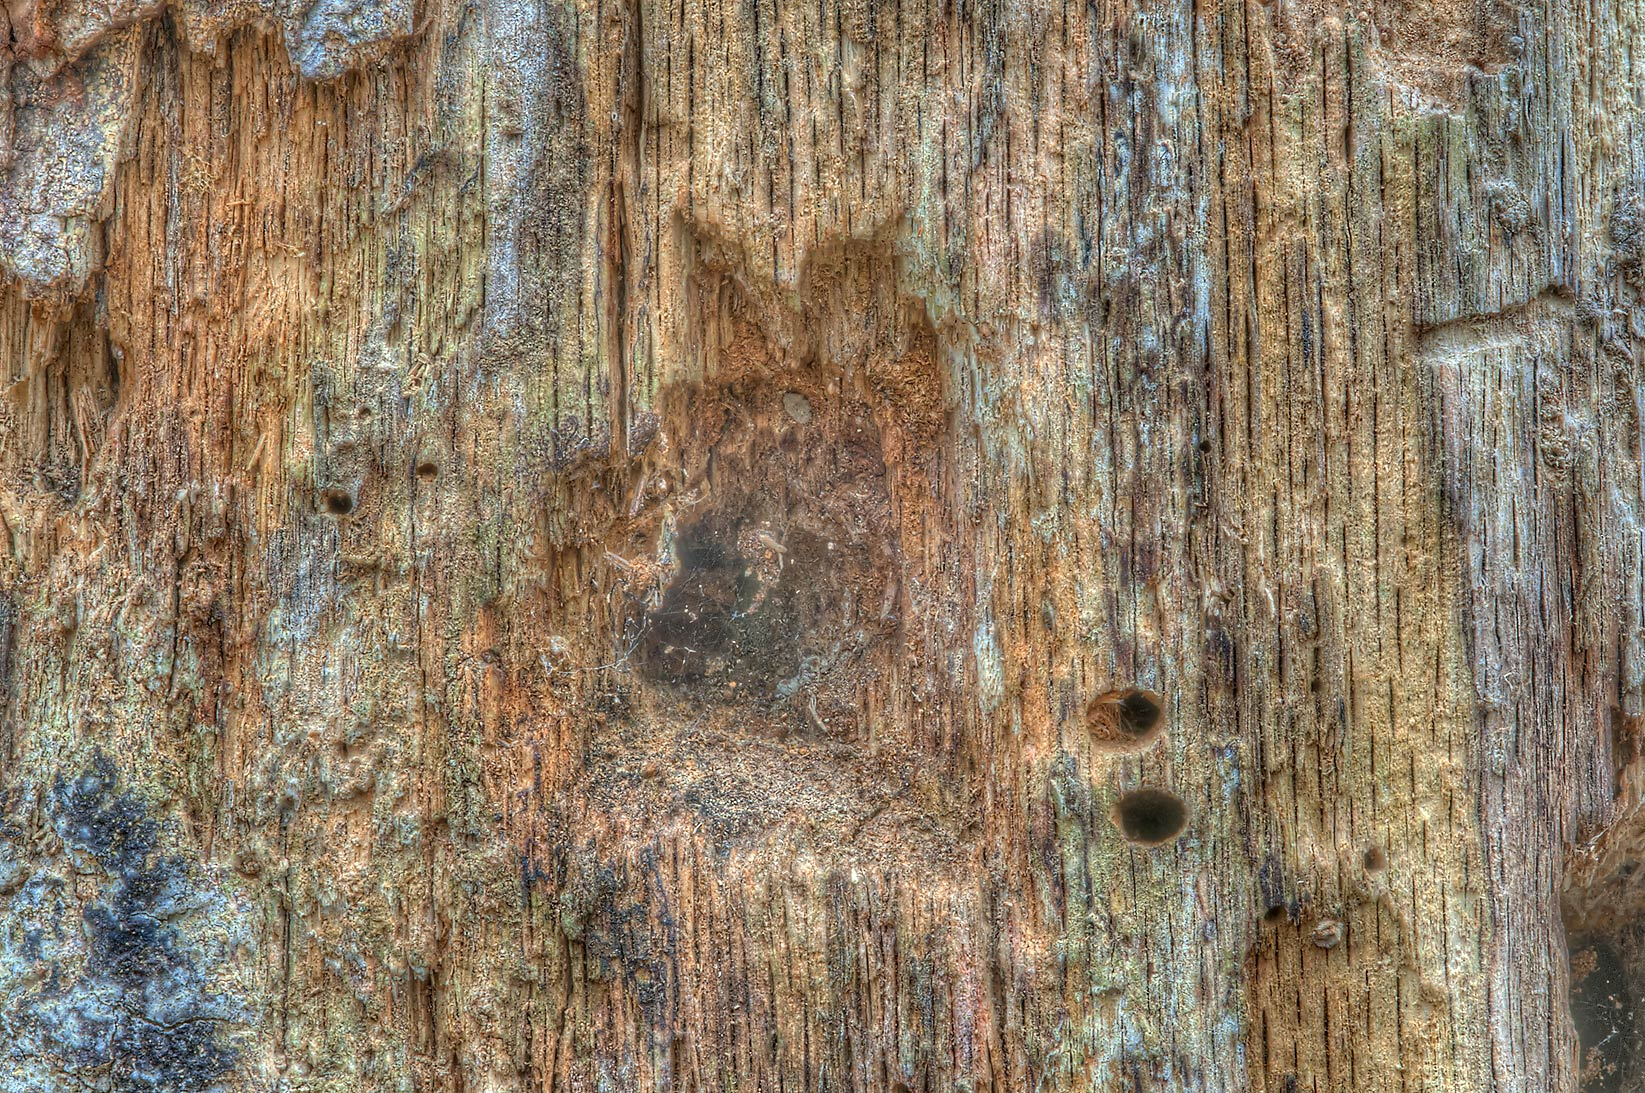 Texture of rotten tree near Racoon Run Trail in Lick Creek Park. College Station, Texas